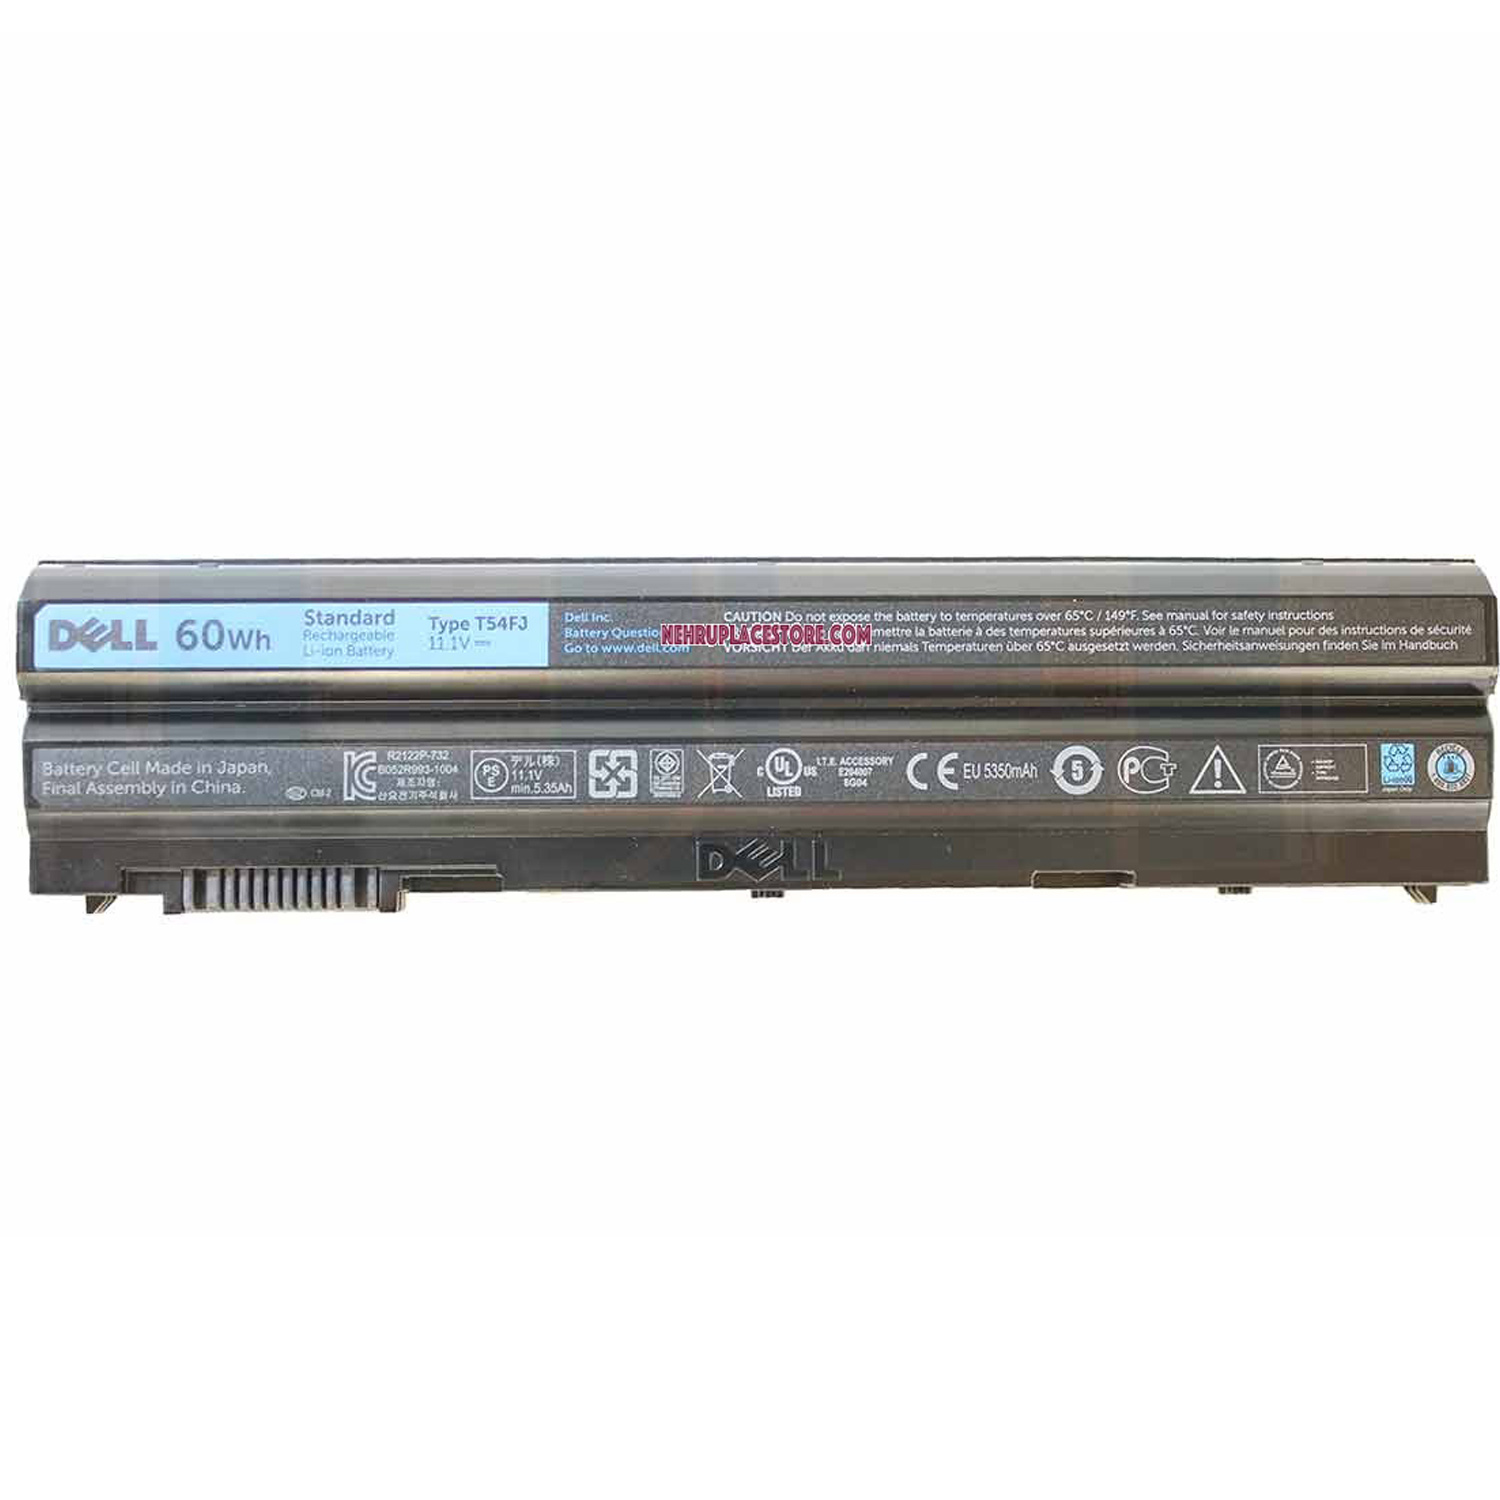 Buy Dell Latitude E6440 6-cell Laptop Original Battery 60Wh - N3X1D